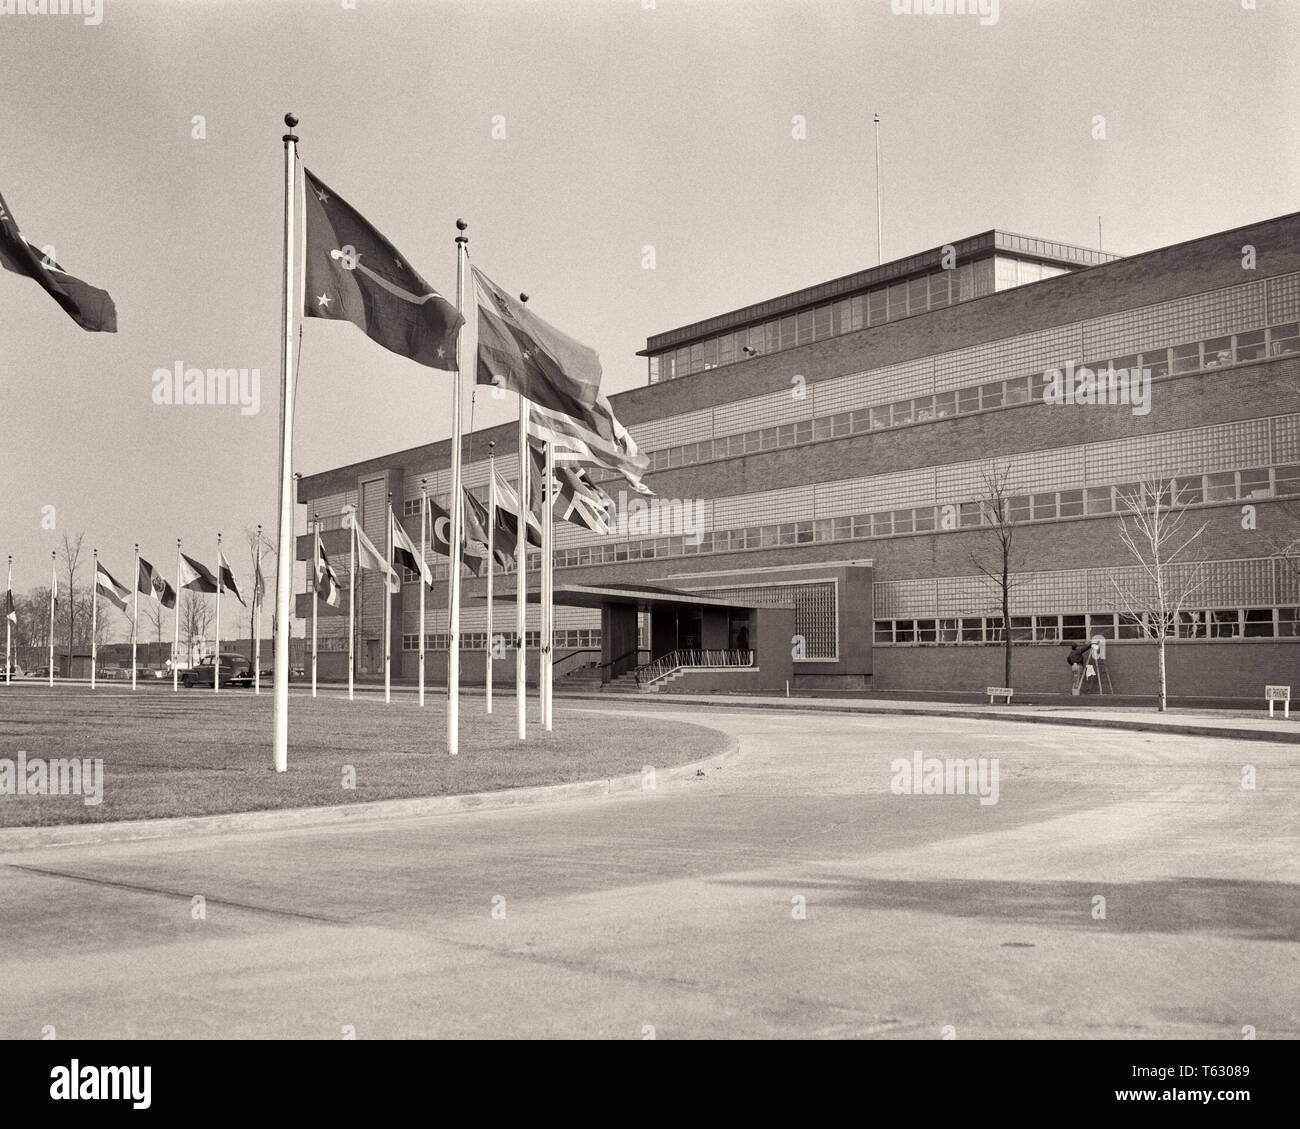 1940s UNITED NATIONS HEADQUARTERS 1946-1952 SPERRY GYROSCOPE CORP BUILDING LAKE SUCCESS NORTH HEMPSTEAD LONG ISLAND NEW YORK USA - r2751 HAR001 HARS OLD FASHIONED UNITED NATIONS WORLD PEACE - Stock Image